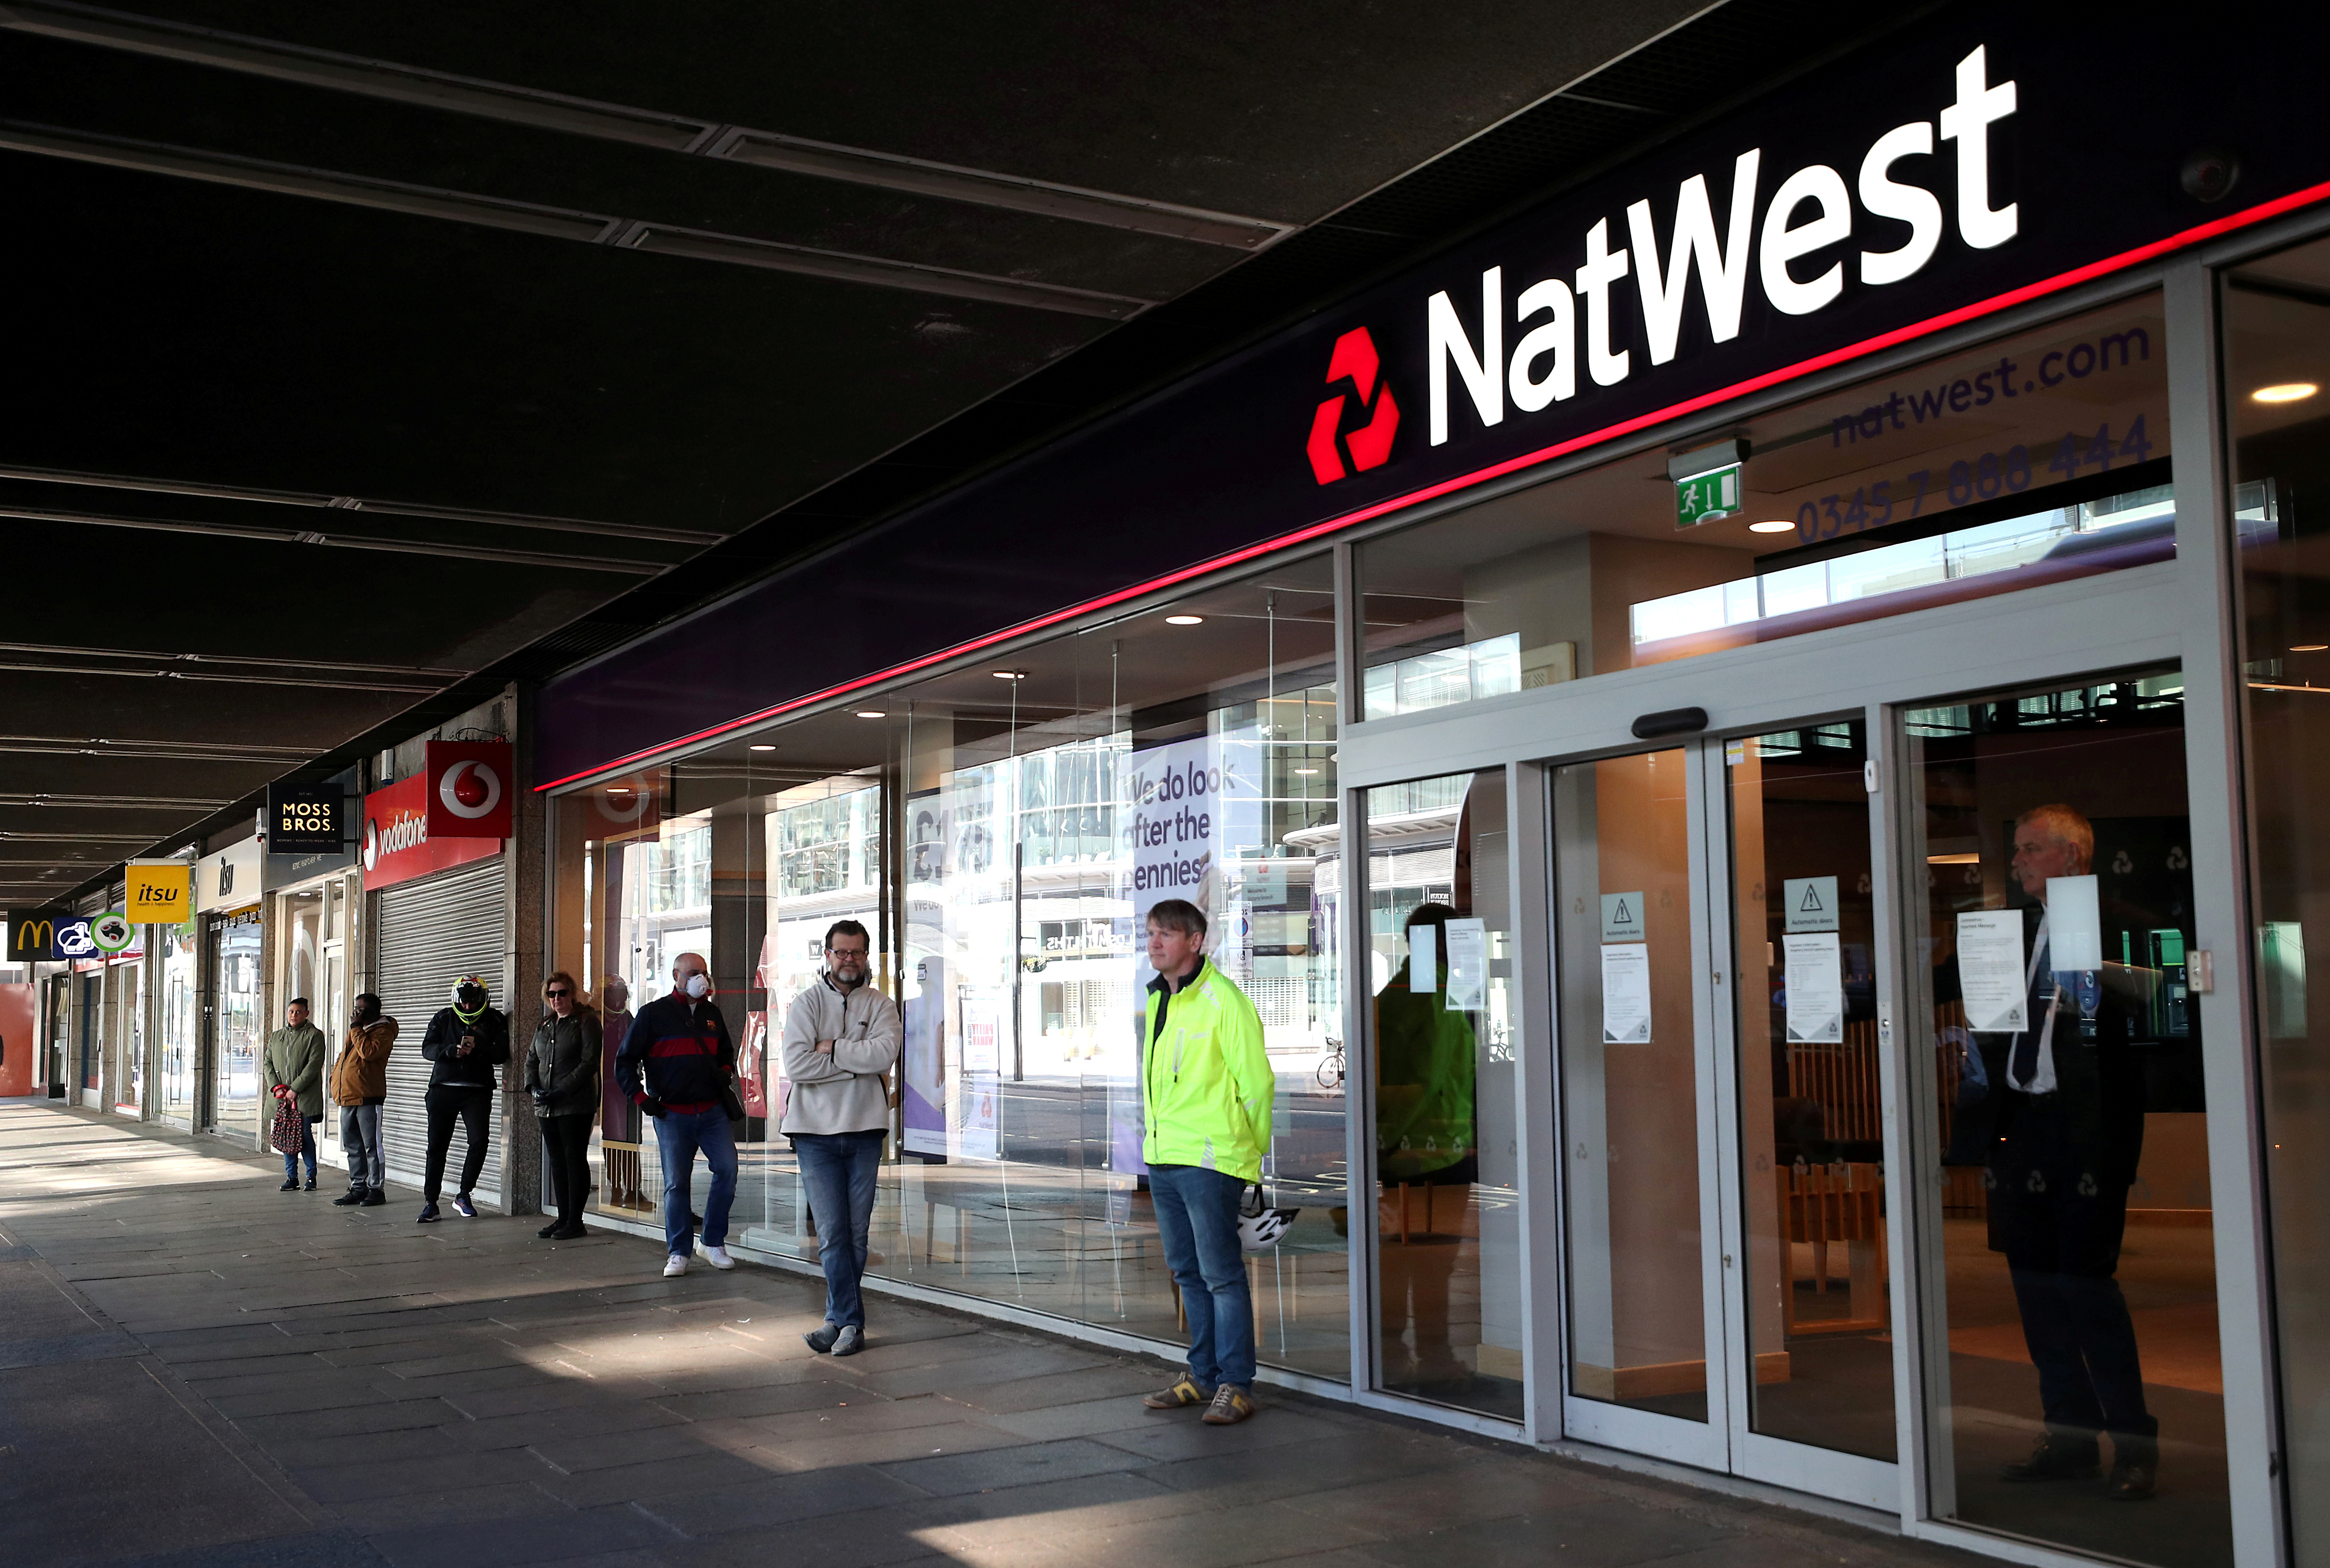 People maintain social distance while they queue outside a Natwest bank as the spread of the coronavirus disease (COVID-19) continues, in London, Britain, March 26, 2020. REUTERS/Hannah McKay/File Photo